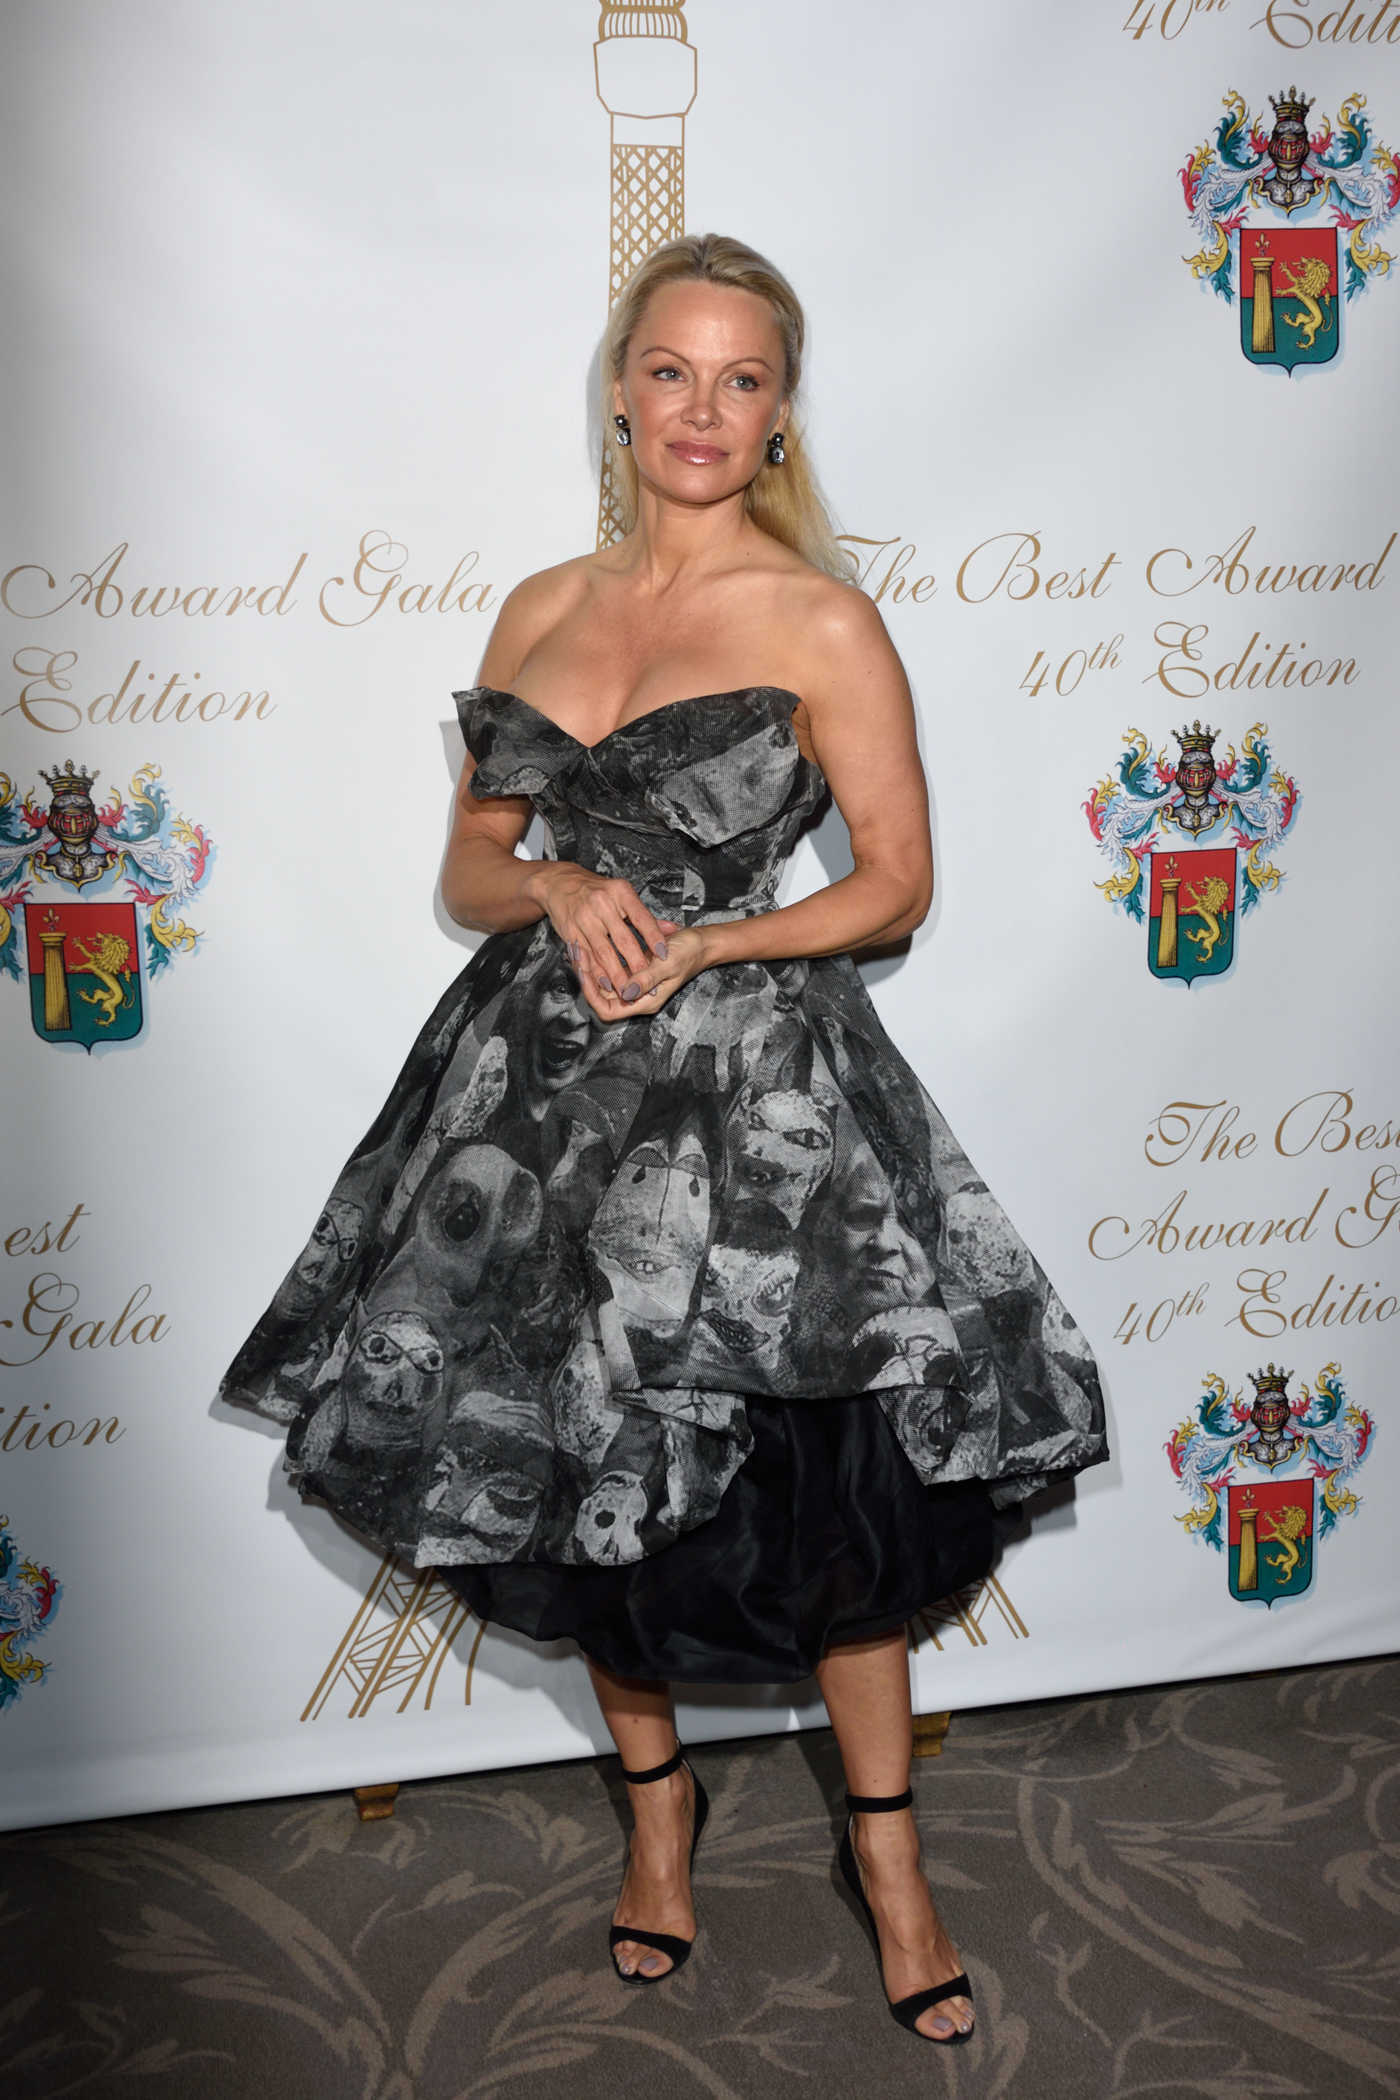 Pamela Anderson at the 40th Best Award Gala at Four Seasons George V Hotel in Paris 01/27/2017